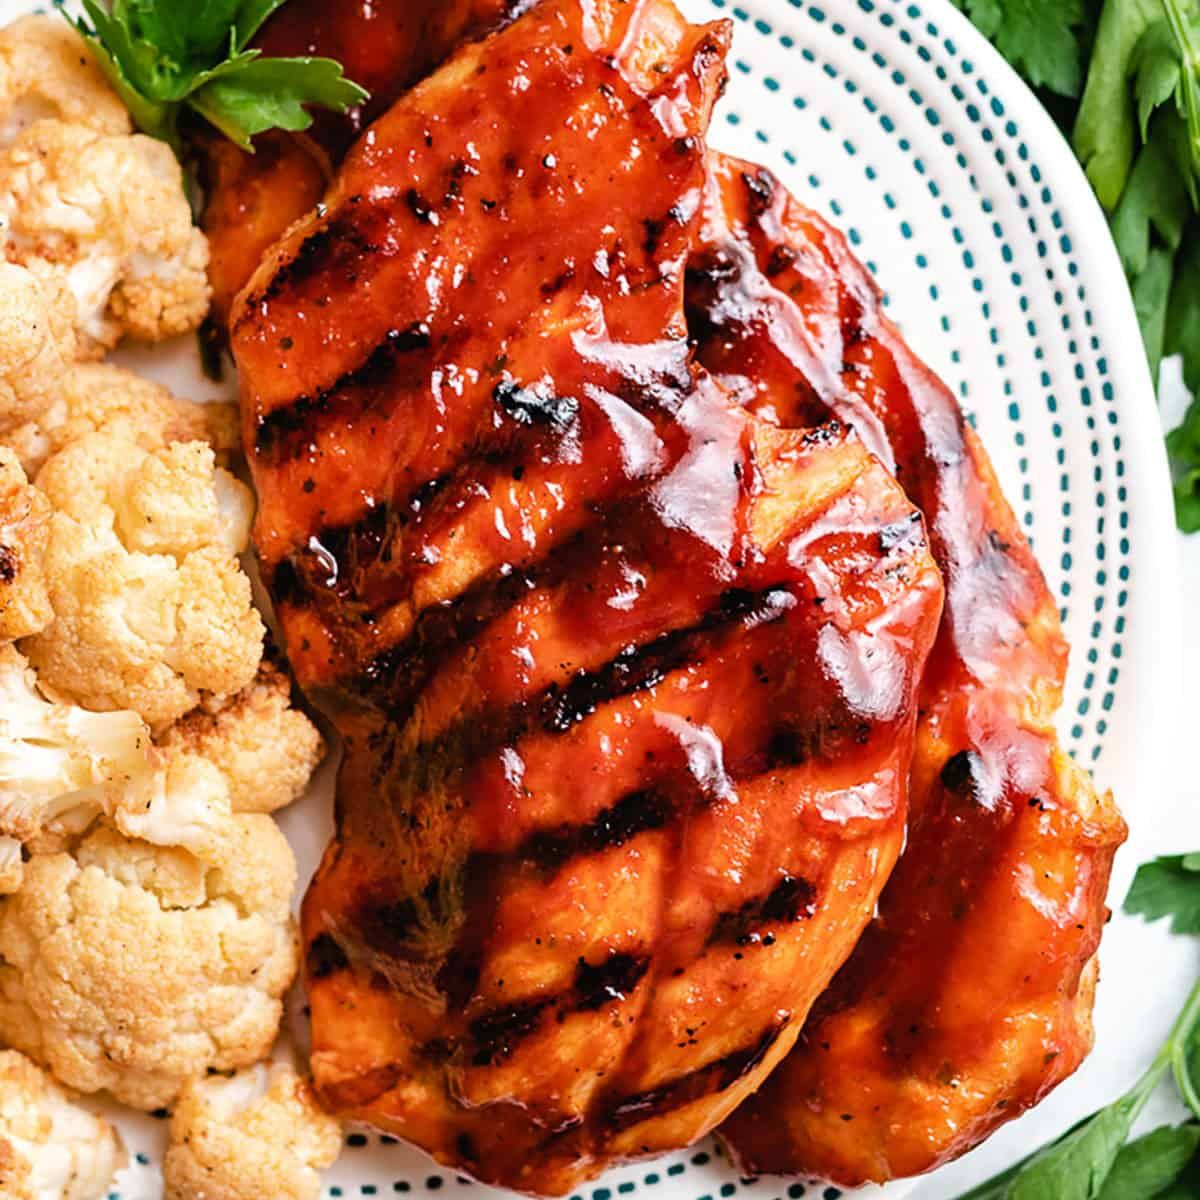 The grilled BBQ chicken breast served with cauliflower.